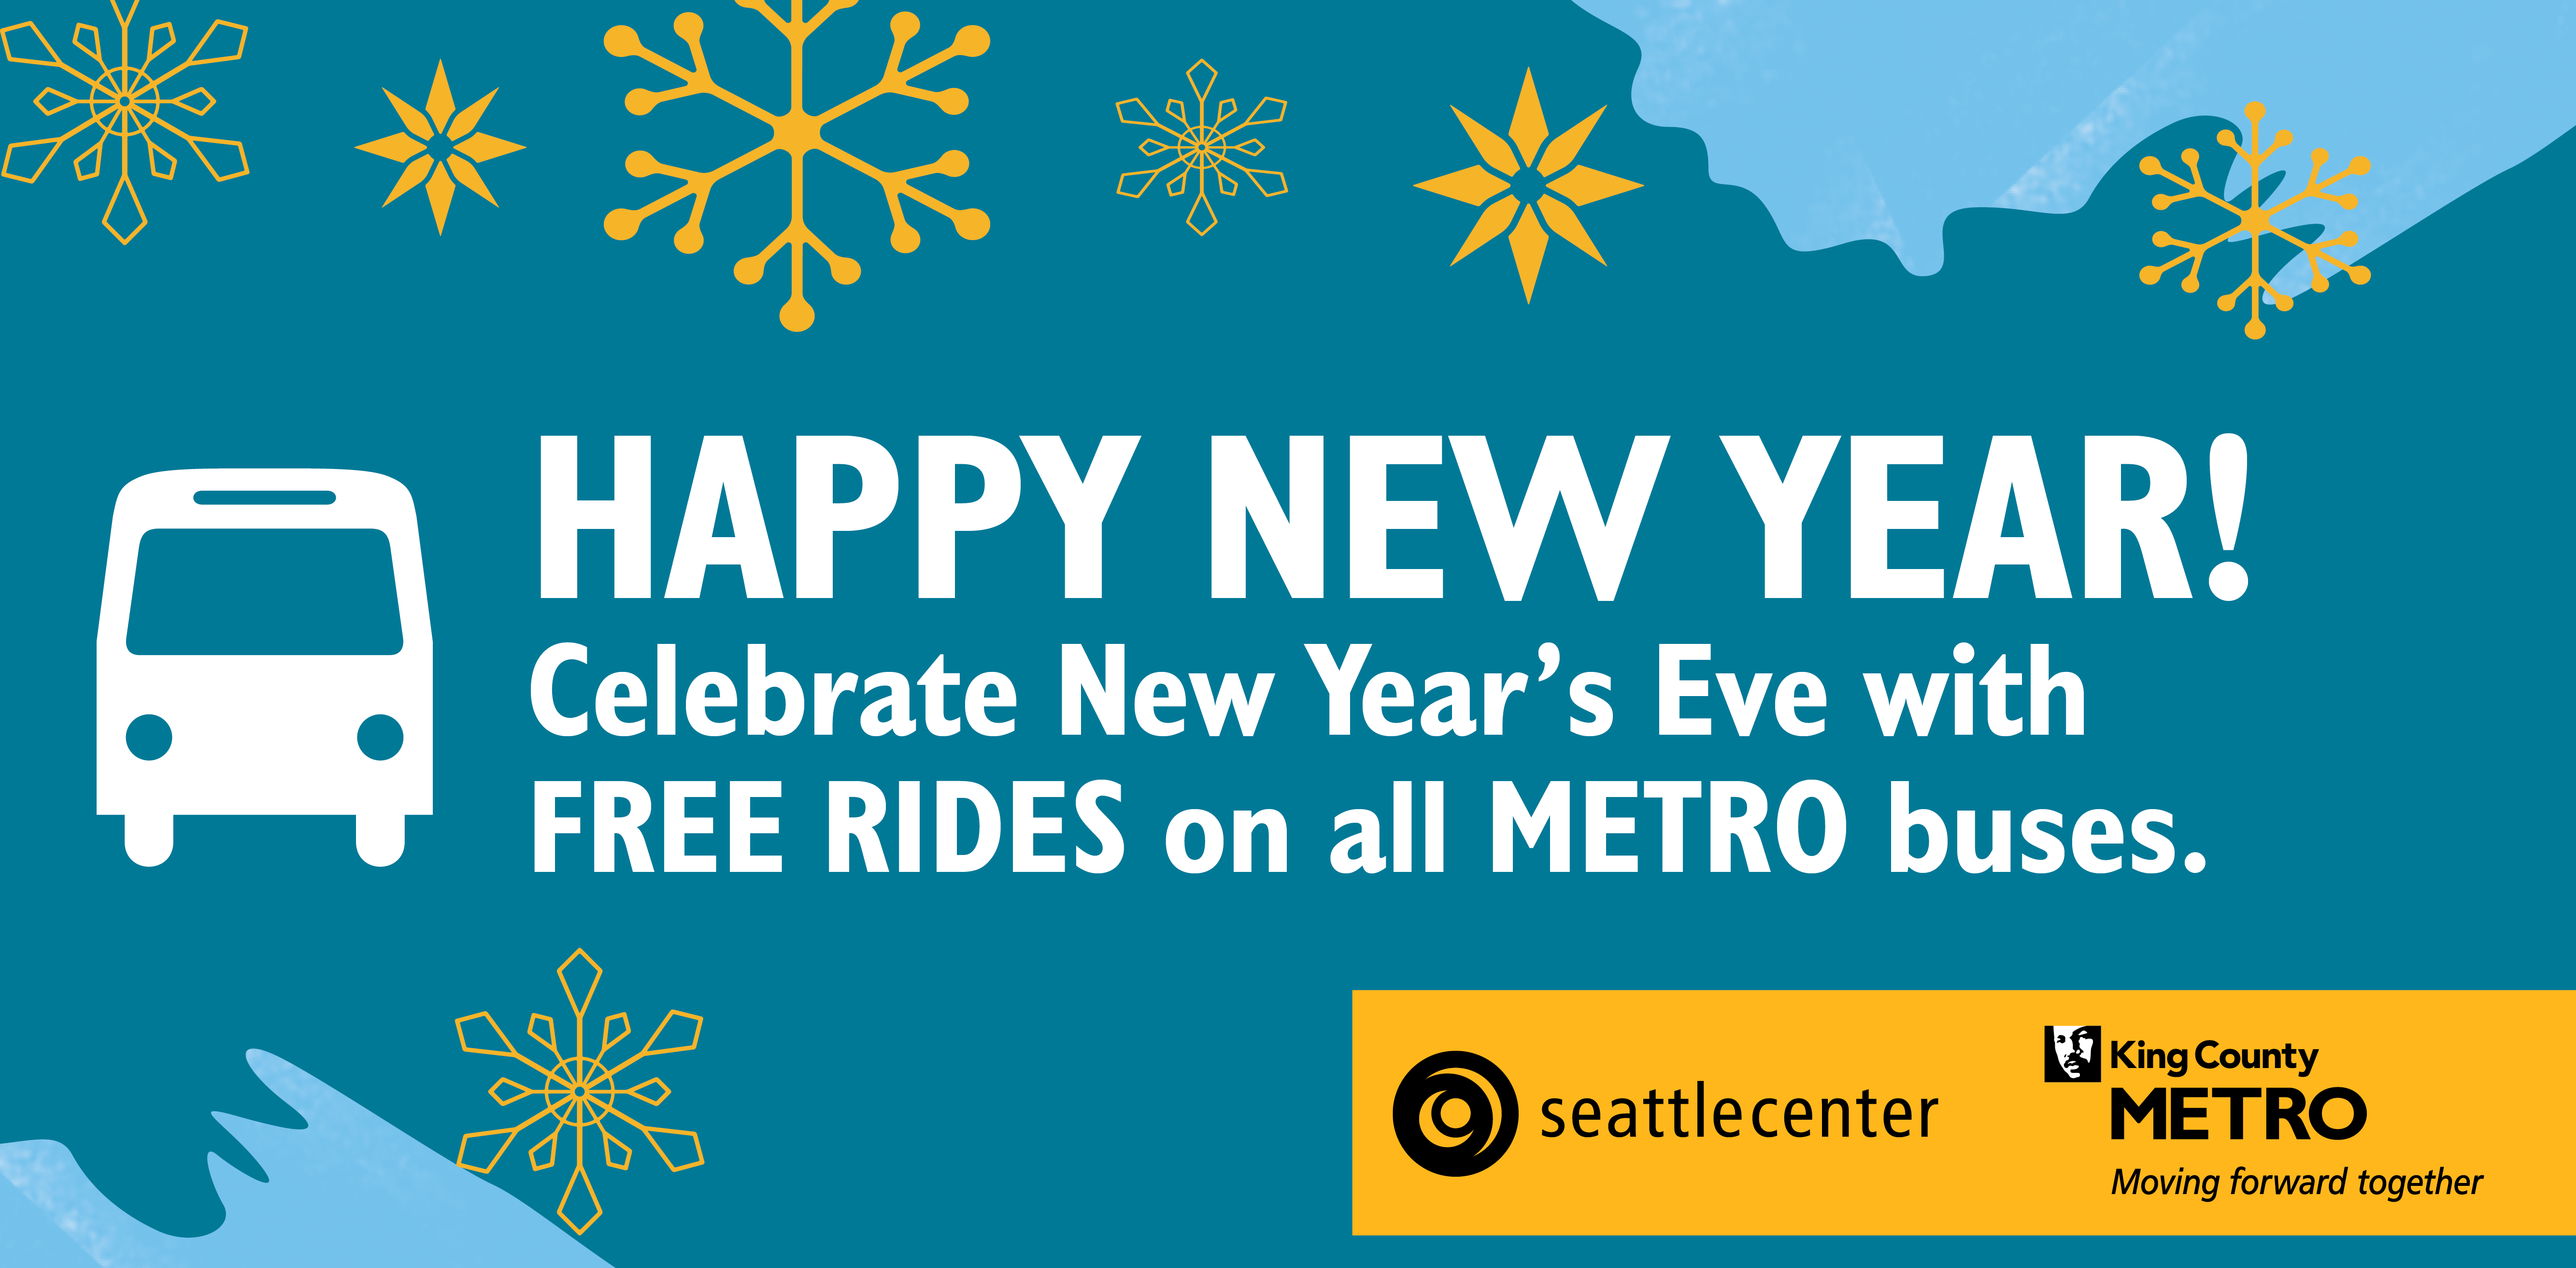 Celebrate New Year's Eve with free rides on King County